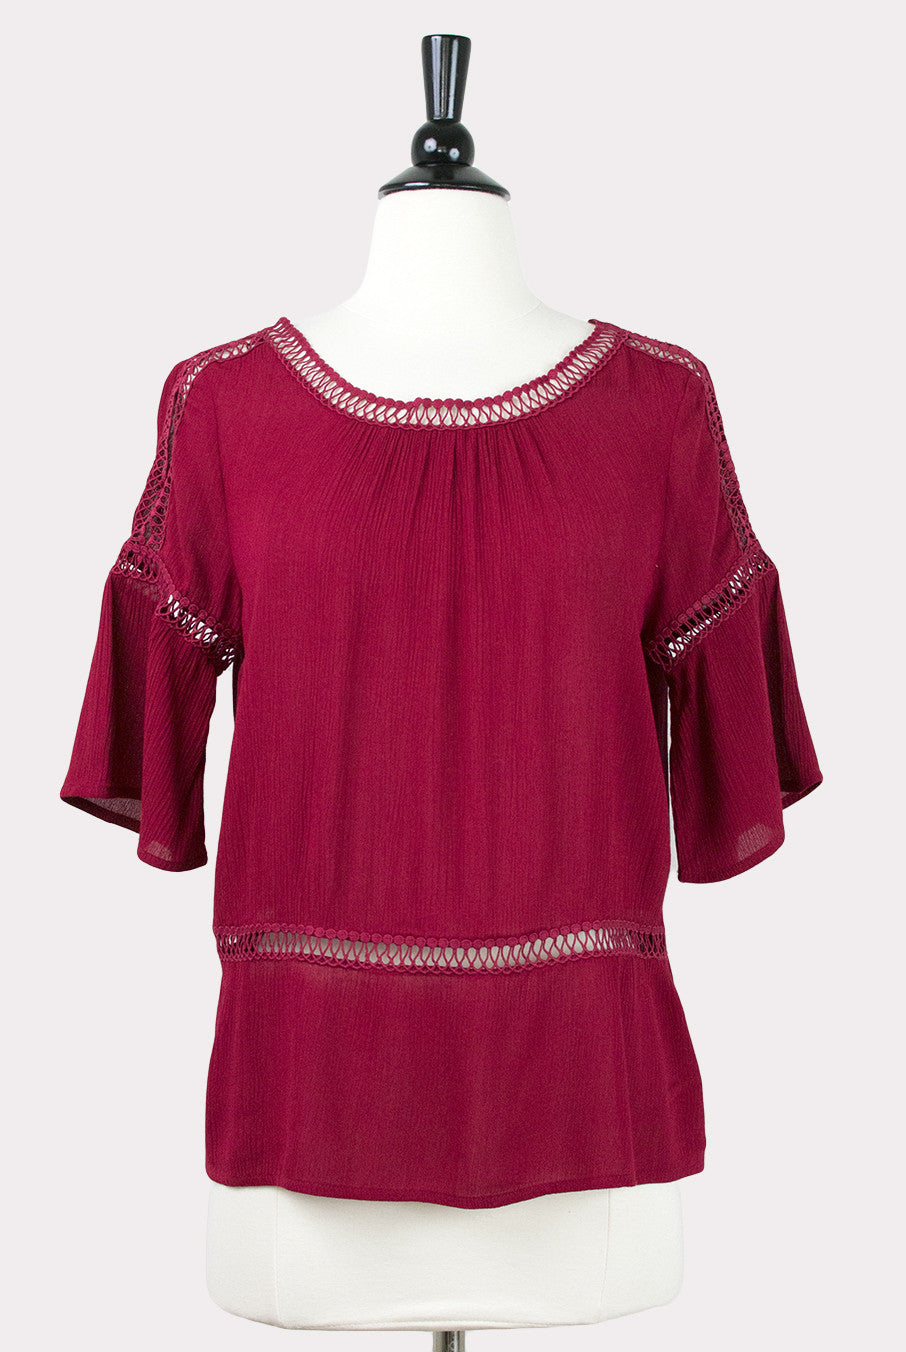 085bf50d938c55 Mylee Red Top by Eden Society - Hourglass Boutique